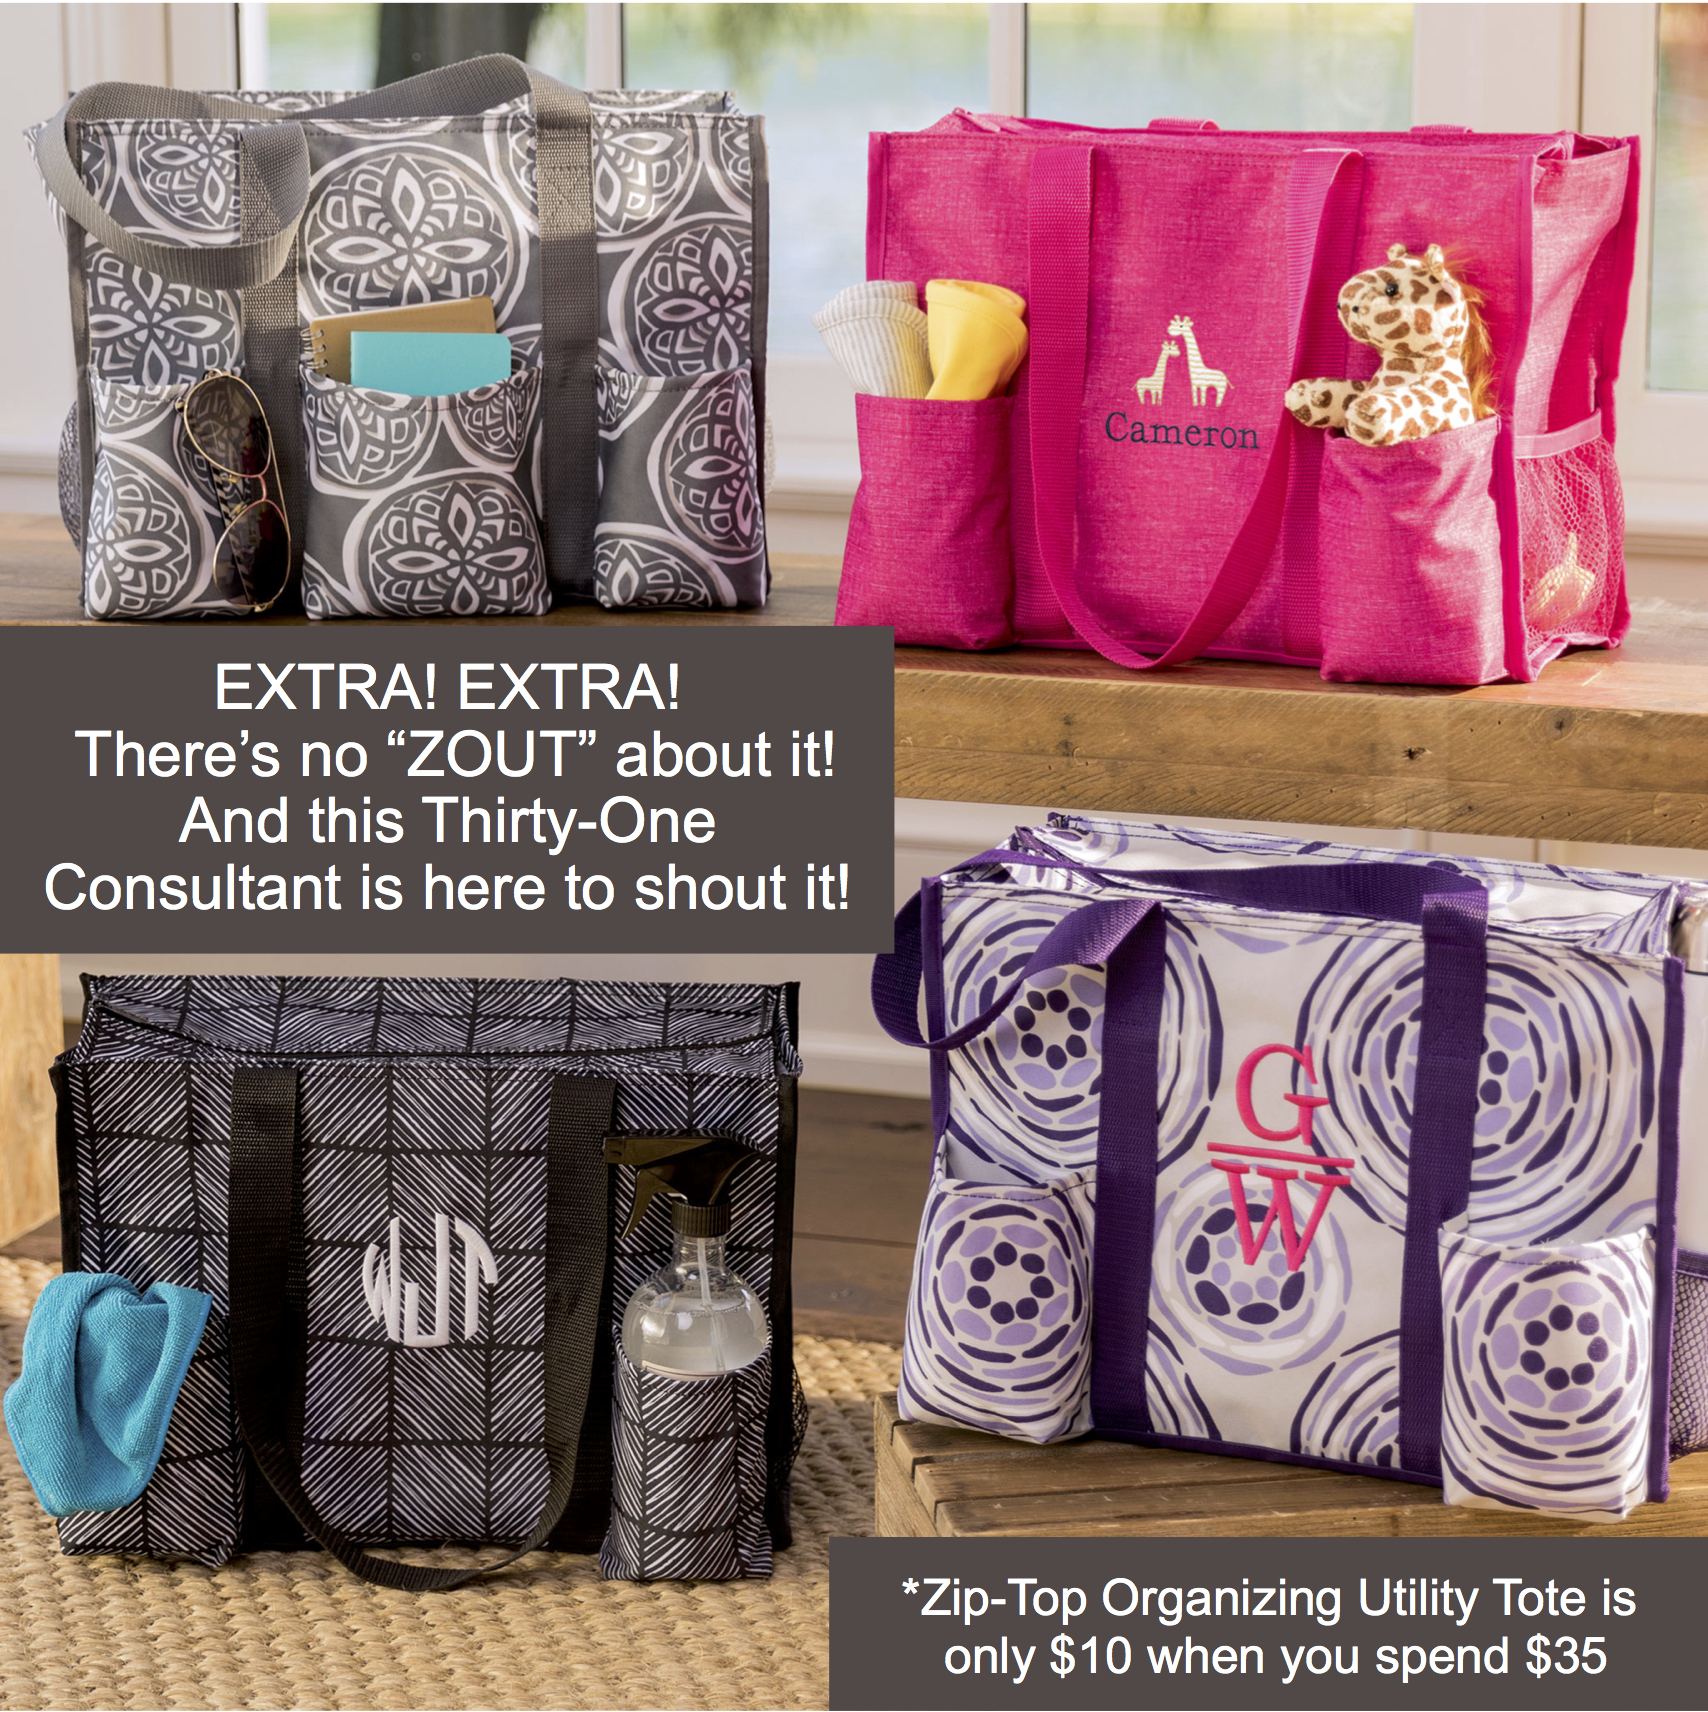 Thirty One Gifts Zip Top Organizing Utility Tote Team Hillenburg